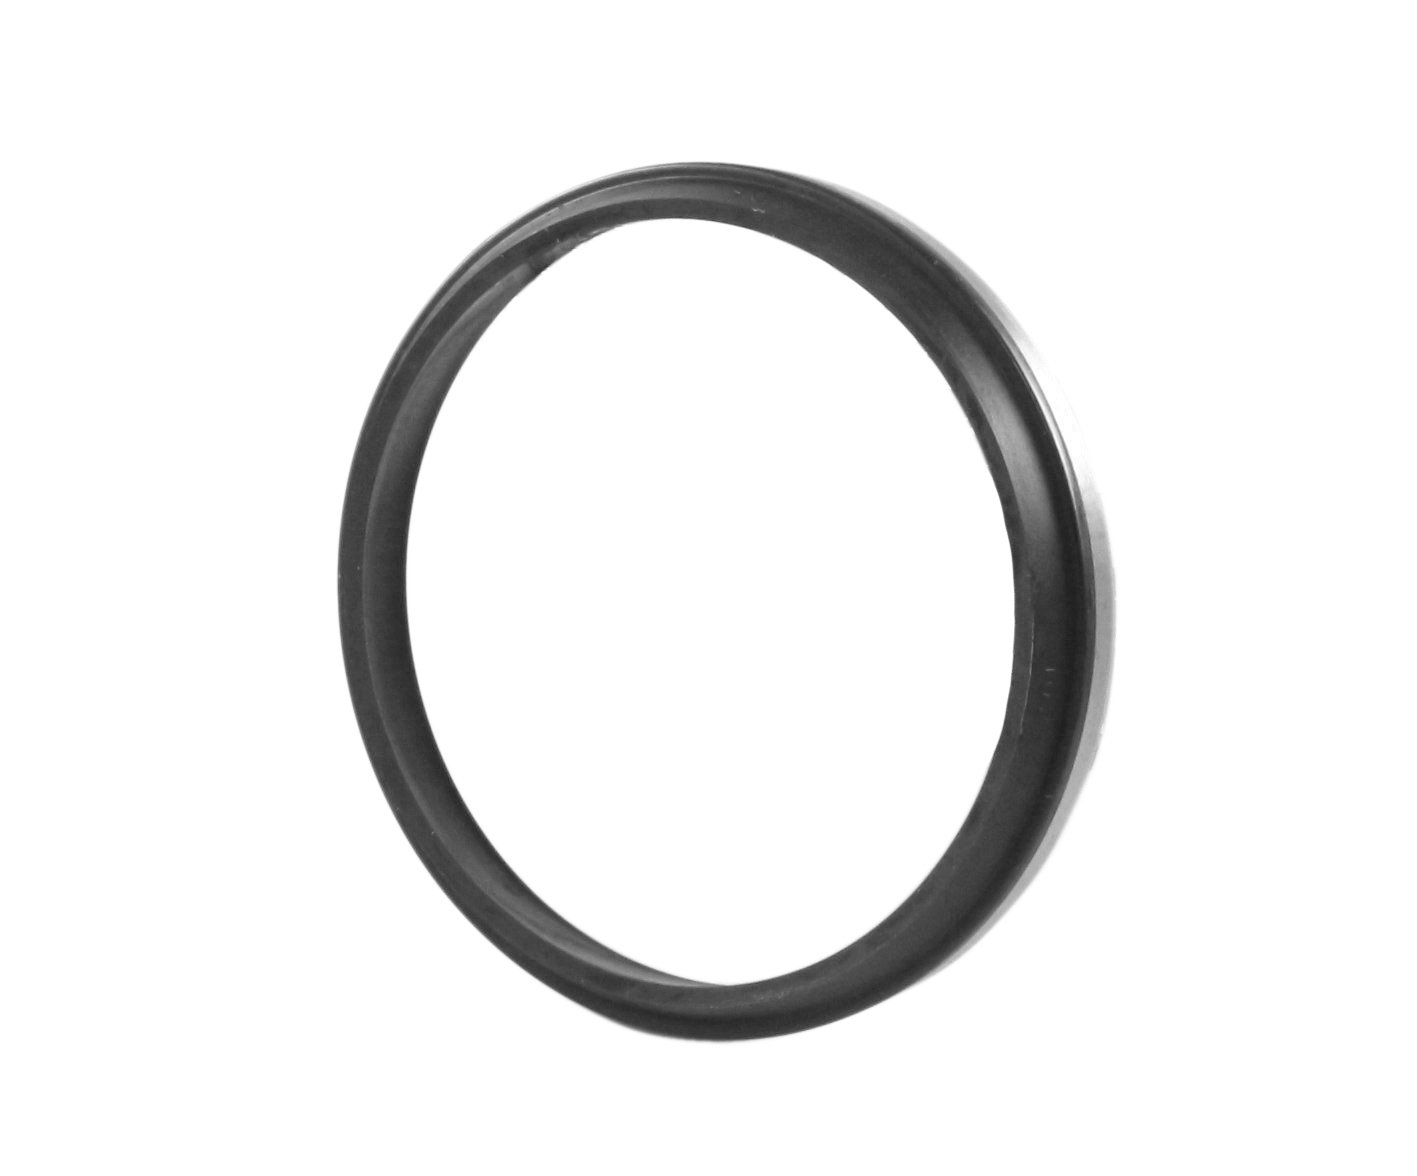 Wiper Seal 70X80X7 / 10 (5 PCS) Oil Seal Grease Seal GA |EAI Oil Seal Dust Seal with Ground Outer Metal housing 70mmX80mmX7/10mm | GA70X80X7/10 | 2.756''x3.150''x0.276''/0.394''